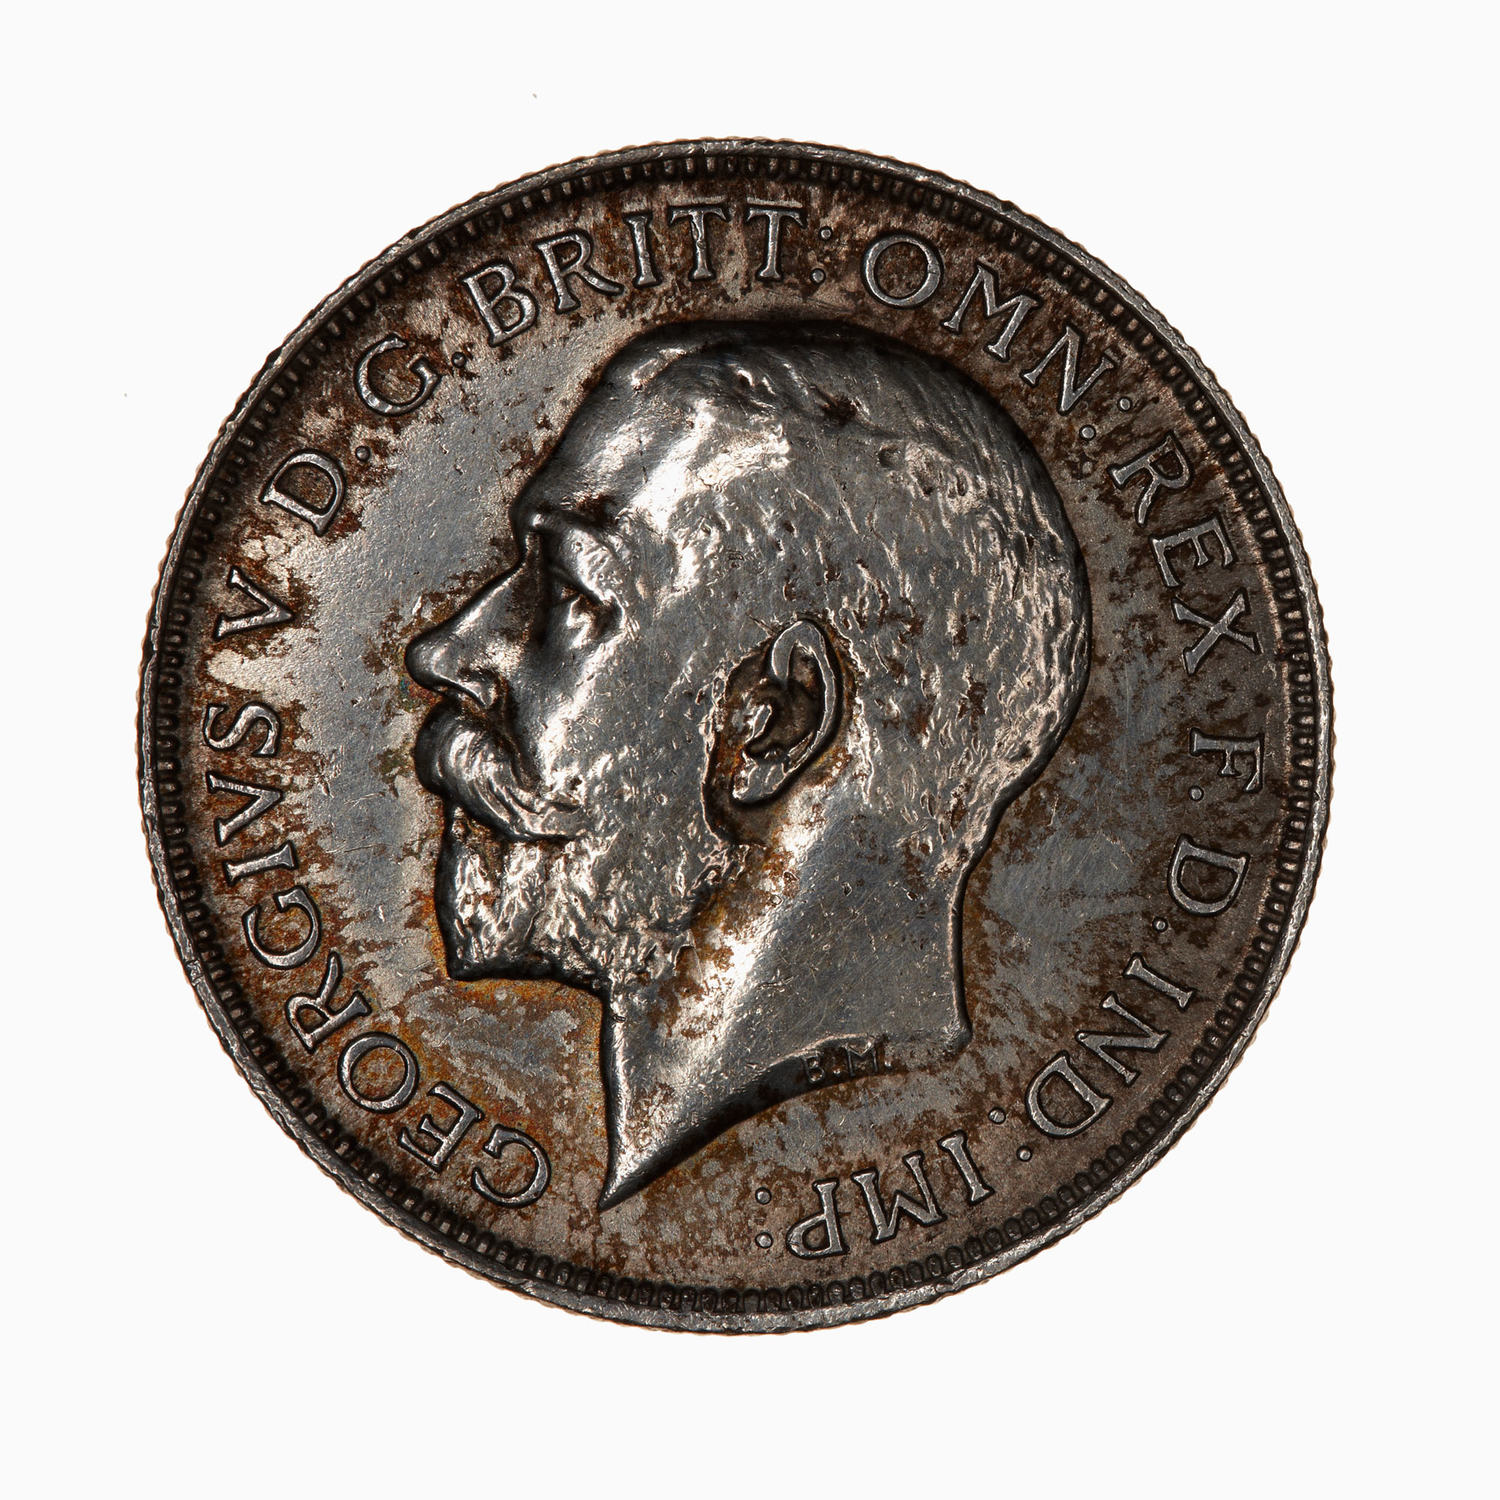 Florin: Photo Coin - Florin (2 Shillings), George V, Great Britain, 1911